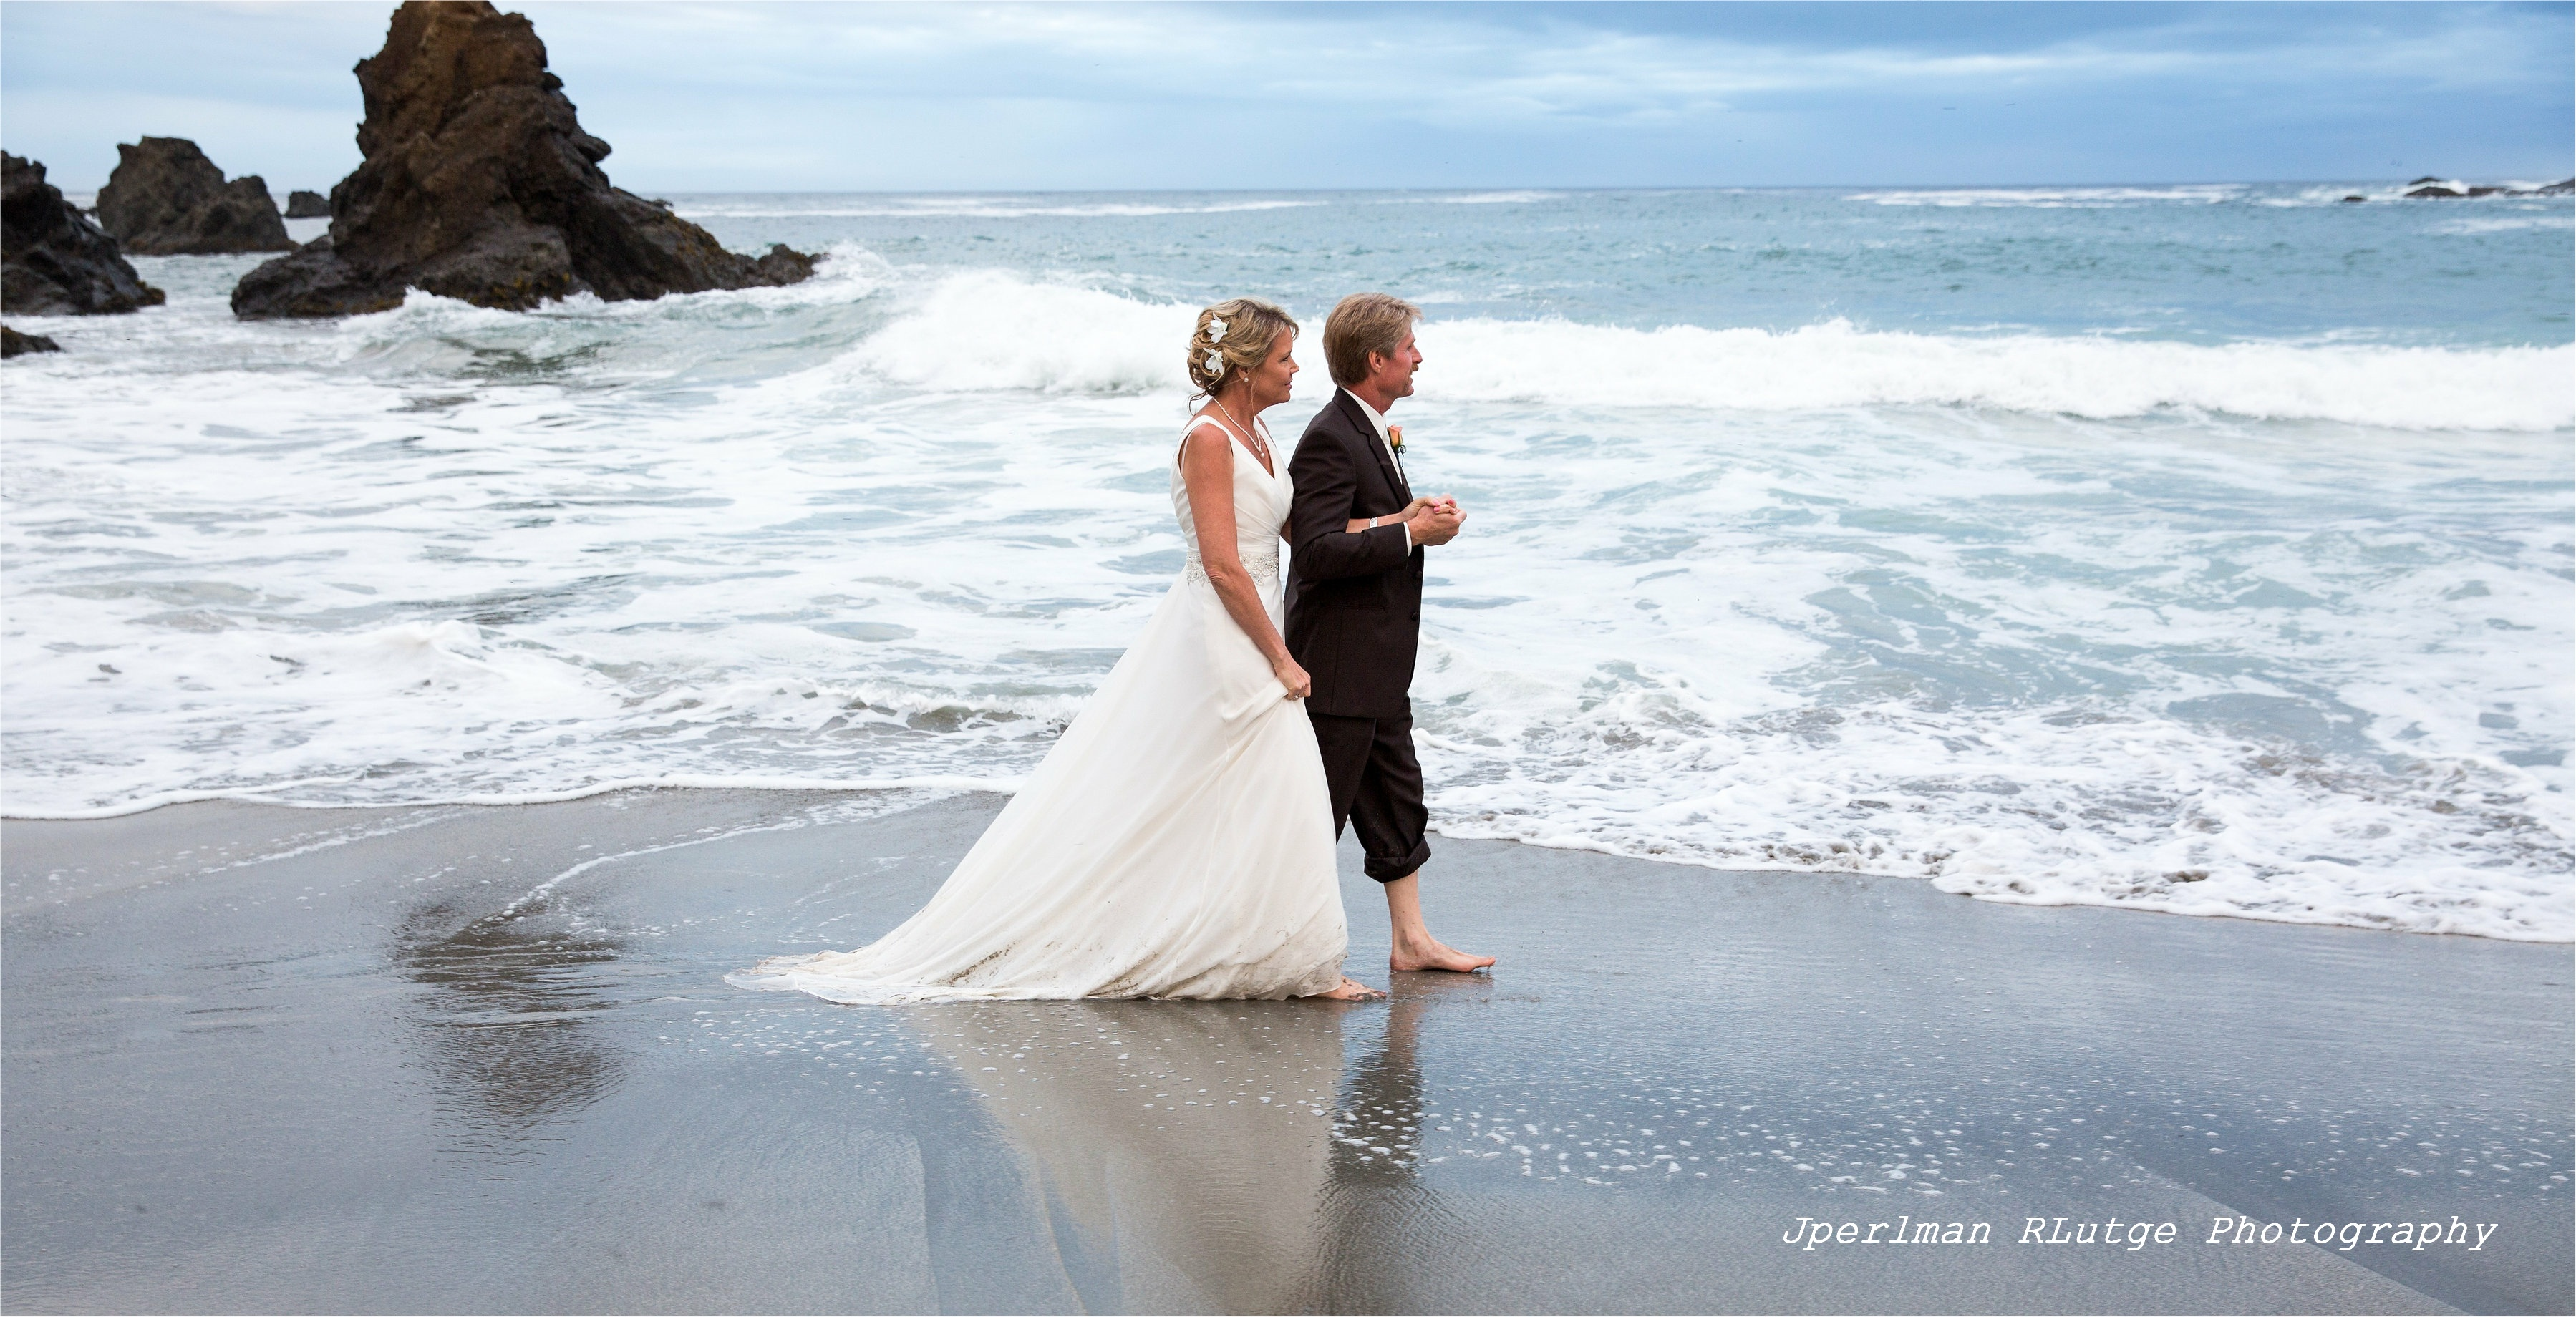 The surf laps their bare feet as Kim and David stroll Jug Handle Beach after their Elope Mendocino ceremony.